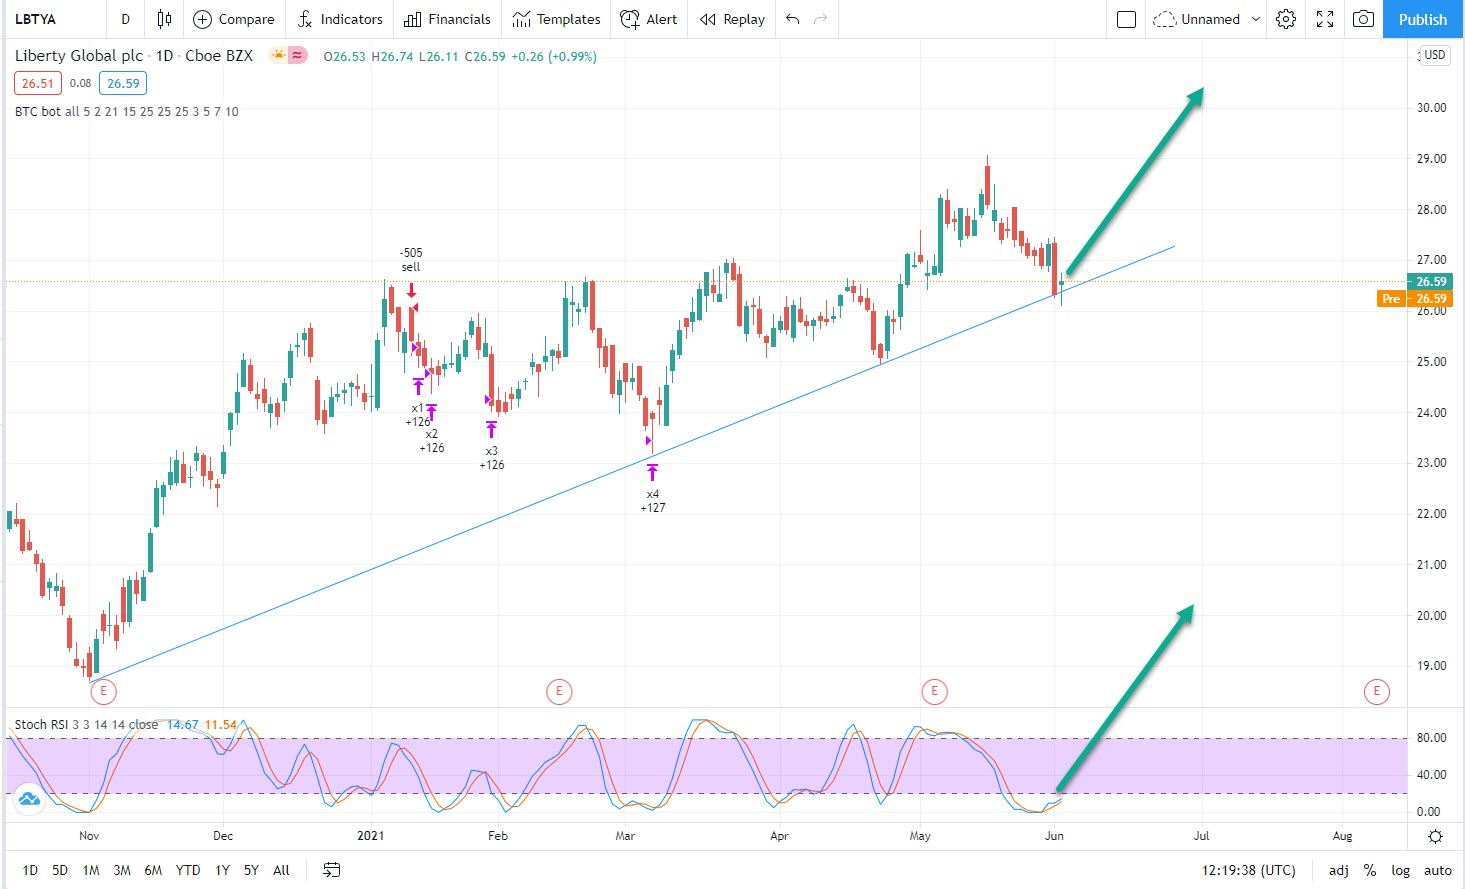 LBTYA testing Supportline, time to buy